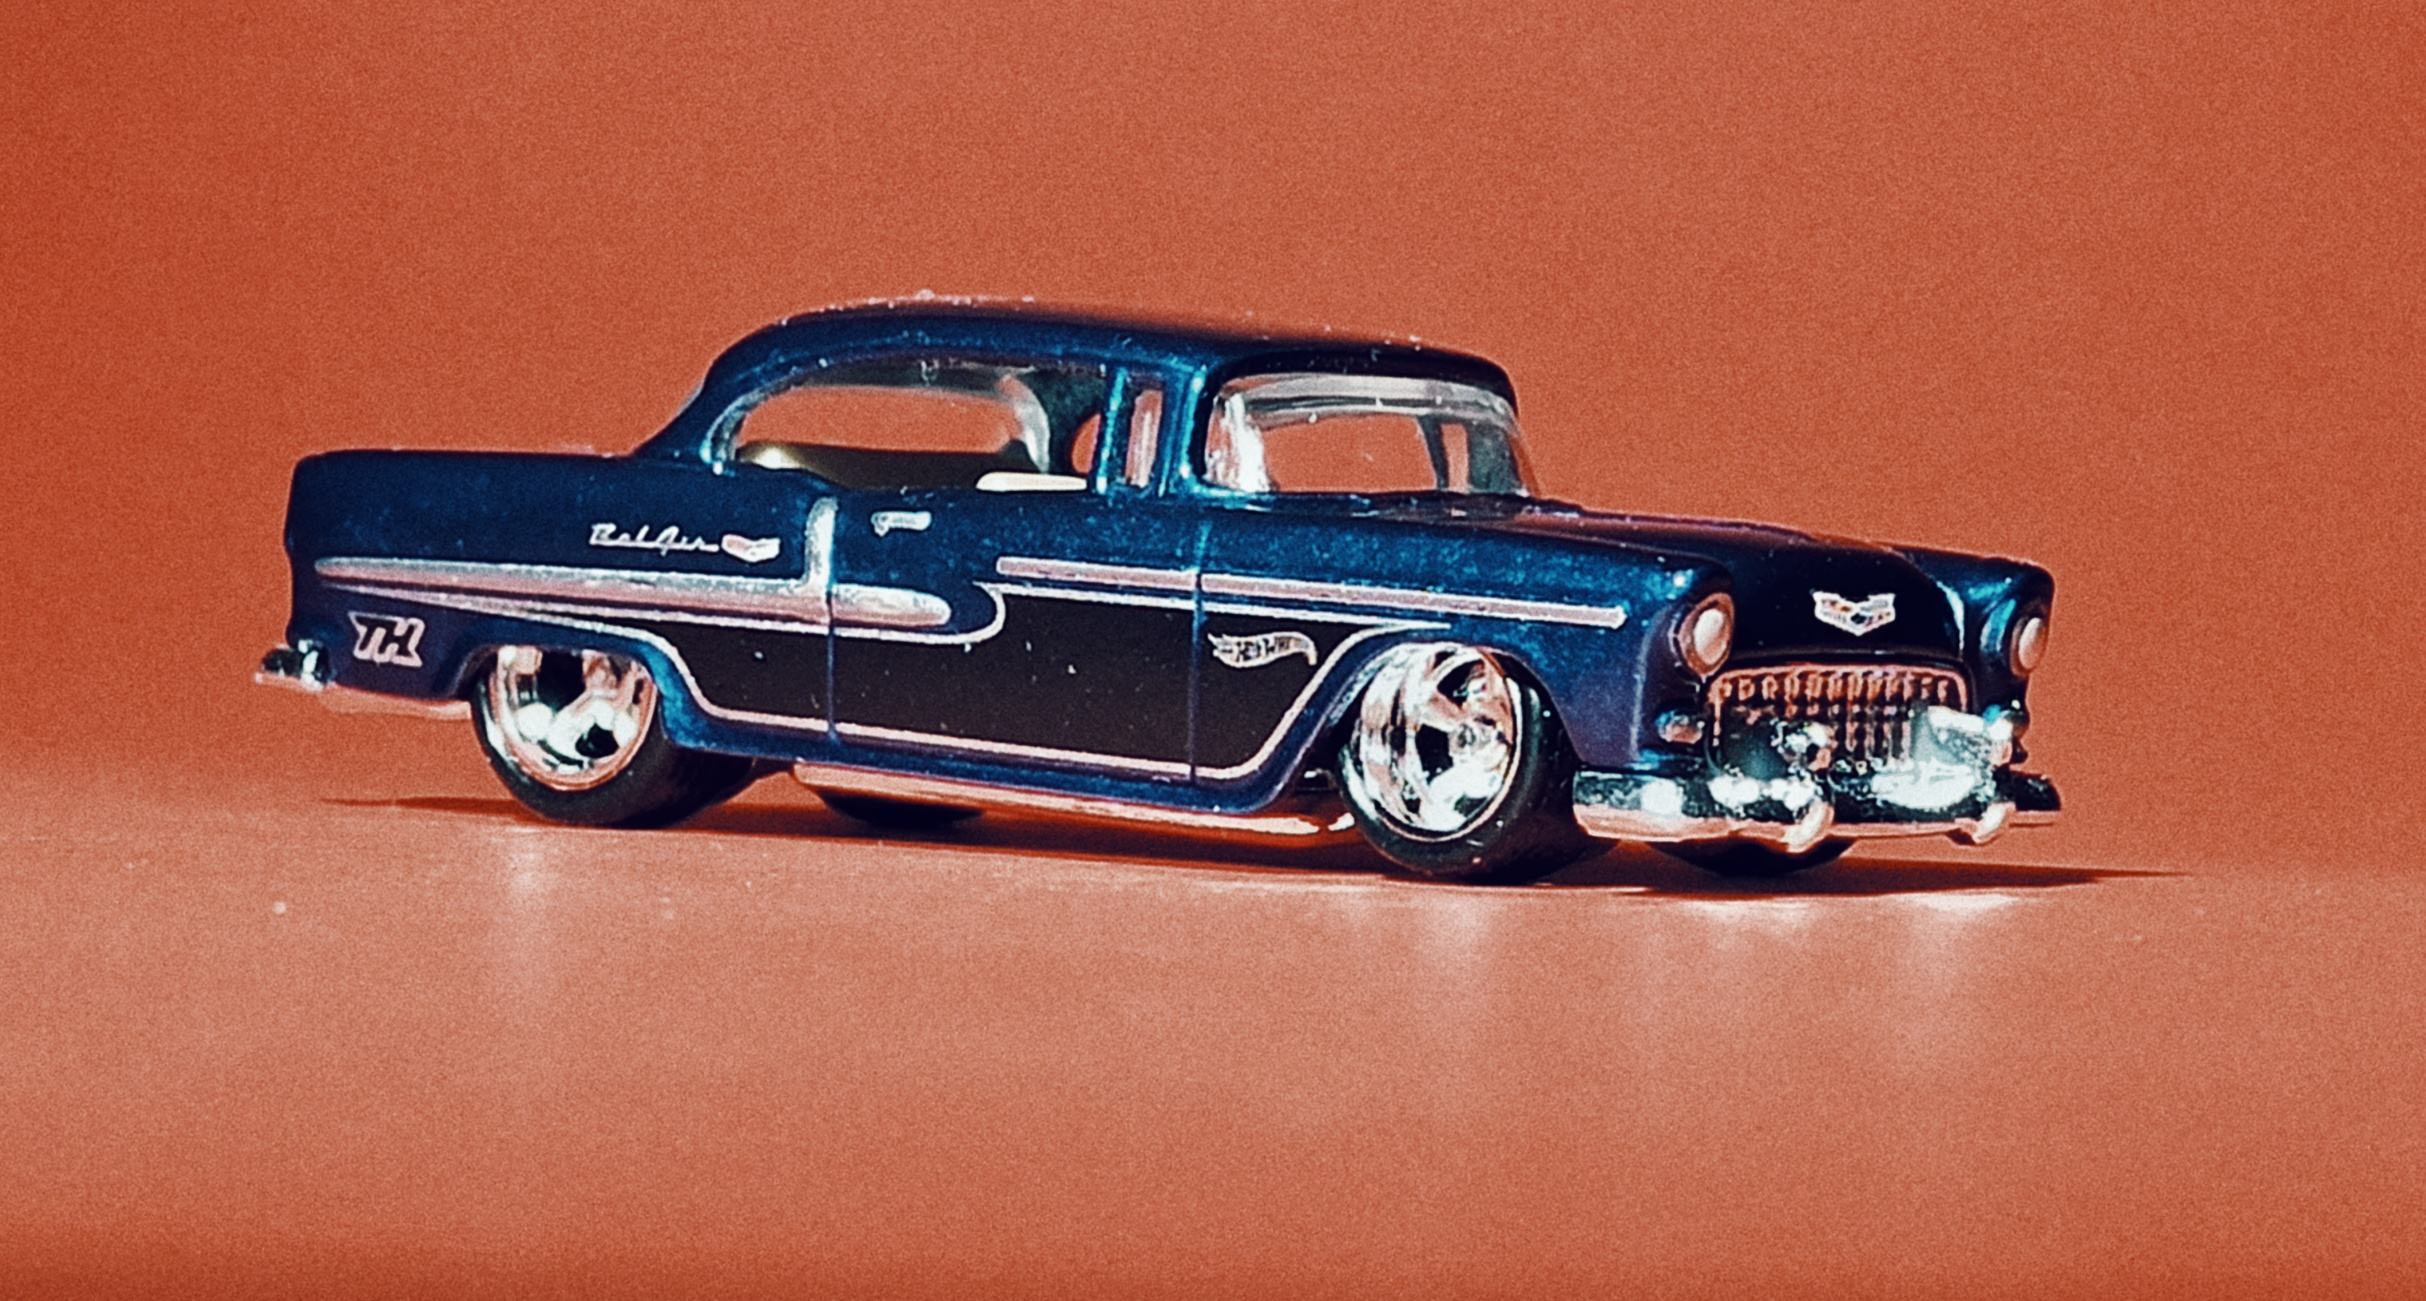 Hot Wheels '55 Chevy () 2020 (20/250) Chevy Bel Air (175) spectraflame blue Super Treasure Hunt (STH) side angle